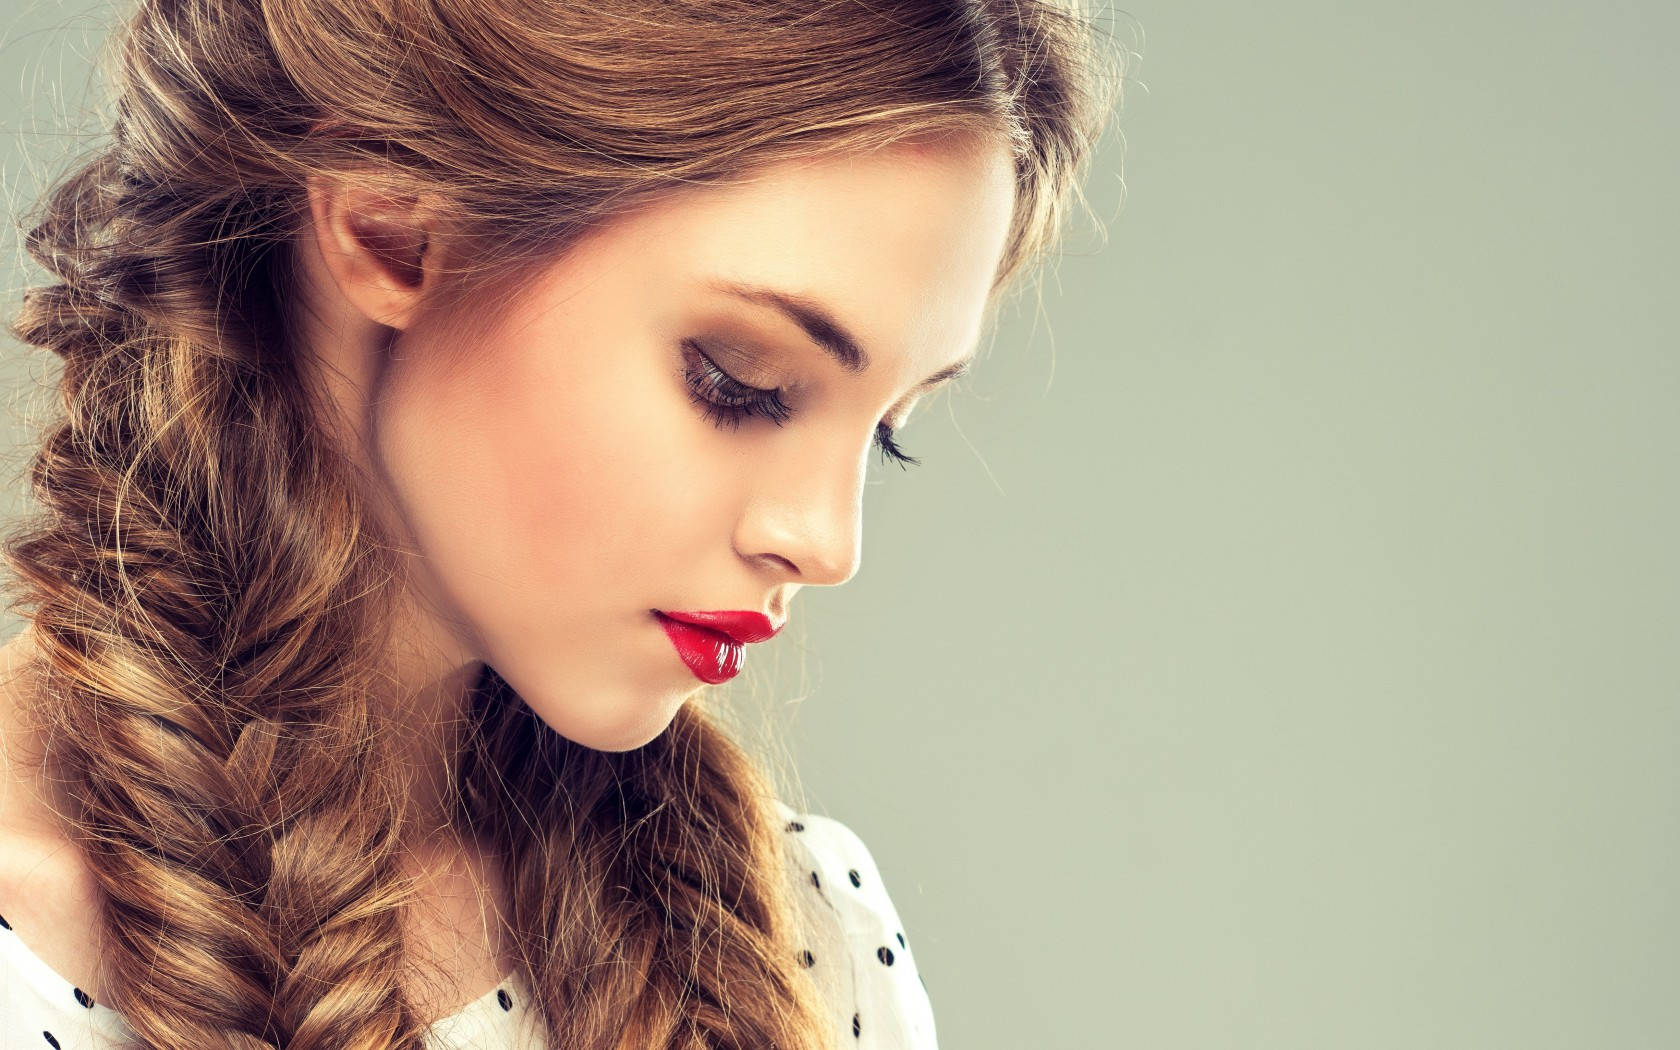 Top 21 Fishtail Braid Hairstyles You'll Love